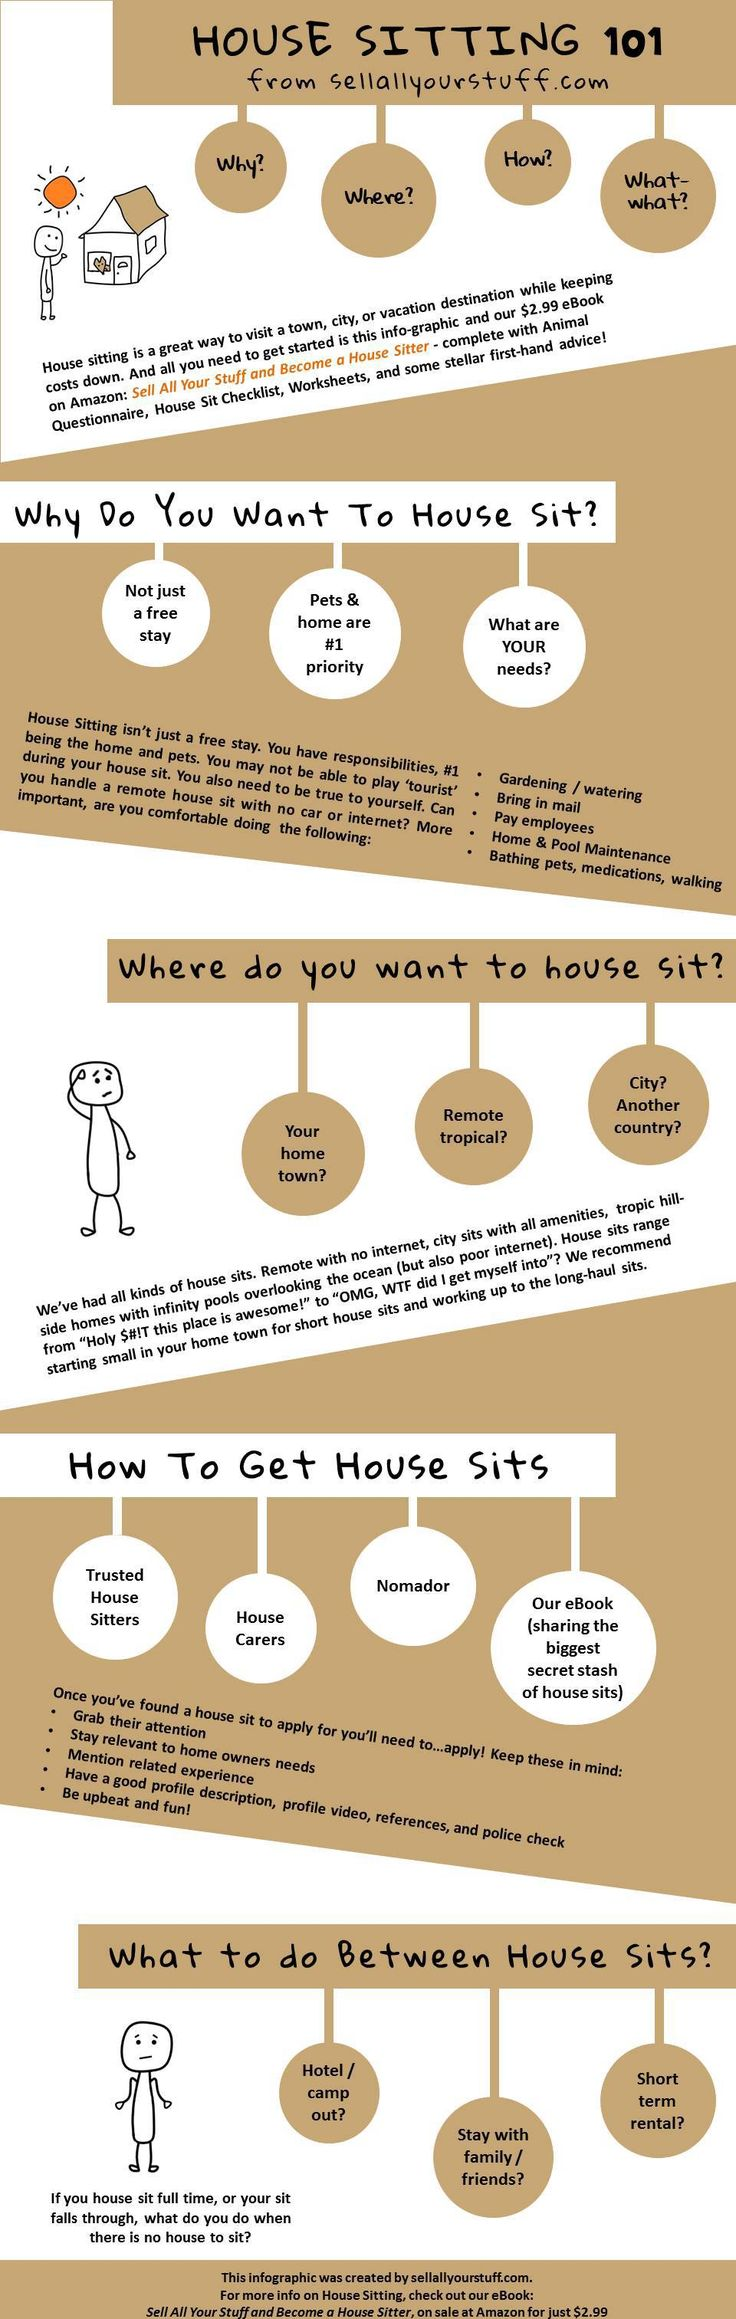 Do you want to be a House Sitter, or a Professional House Sitter?  Download our fun info-graphic below on the basics of being a professional house sitter.